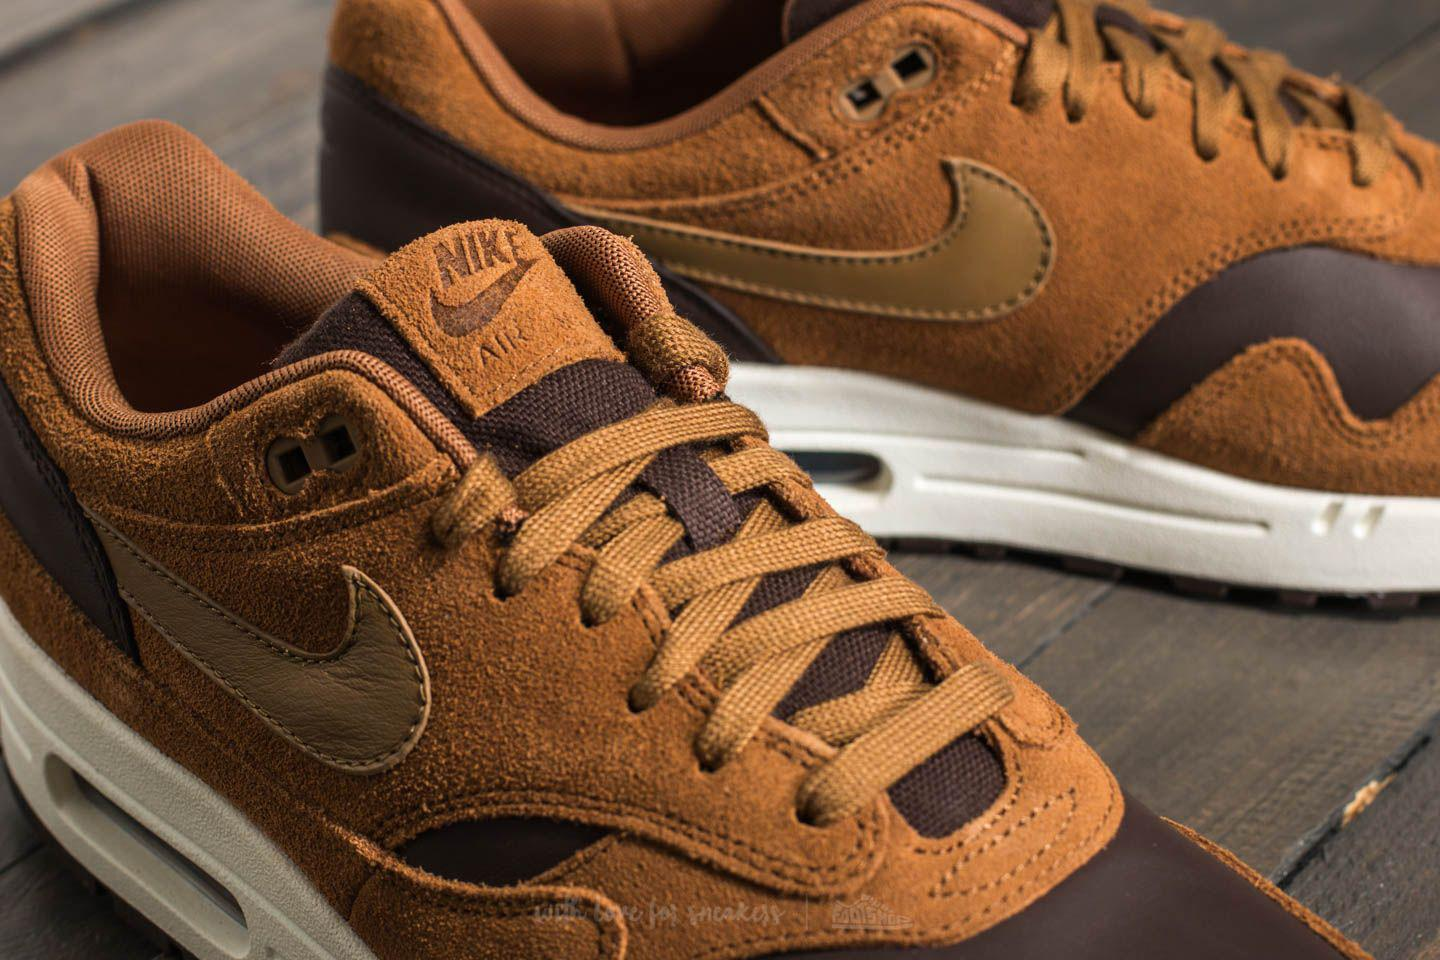 Nike Air Max 1 Premium Leather Ale Brown/ Golde Beige in Brown for ...